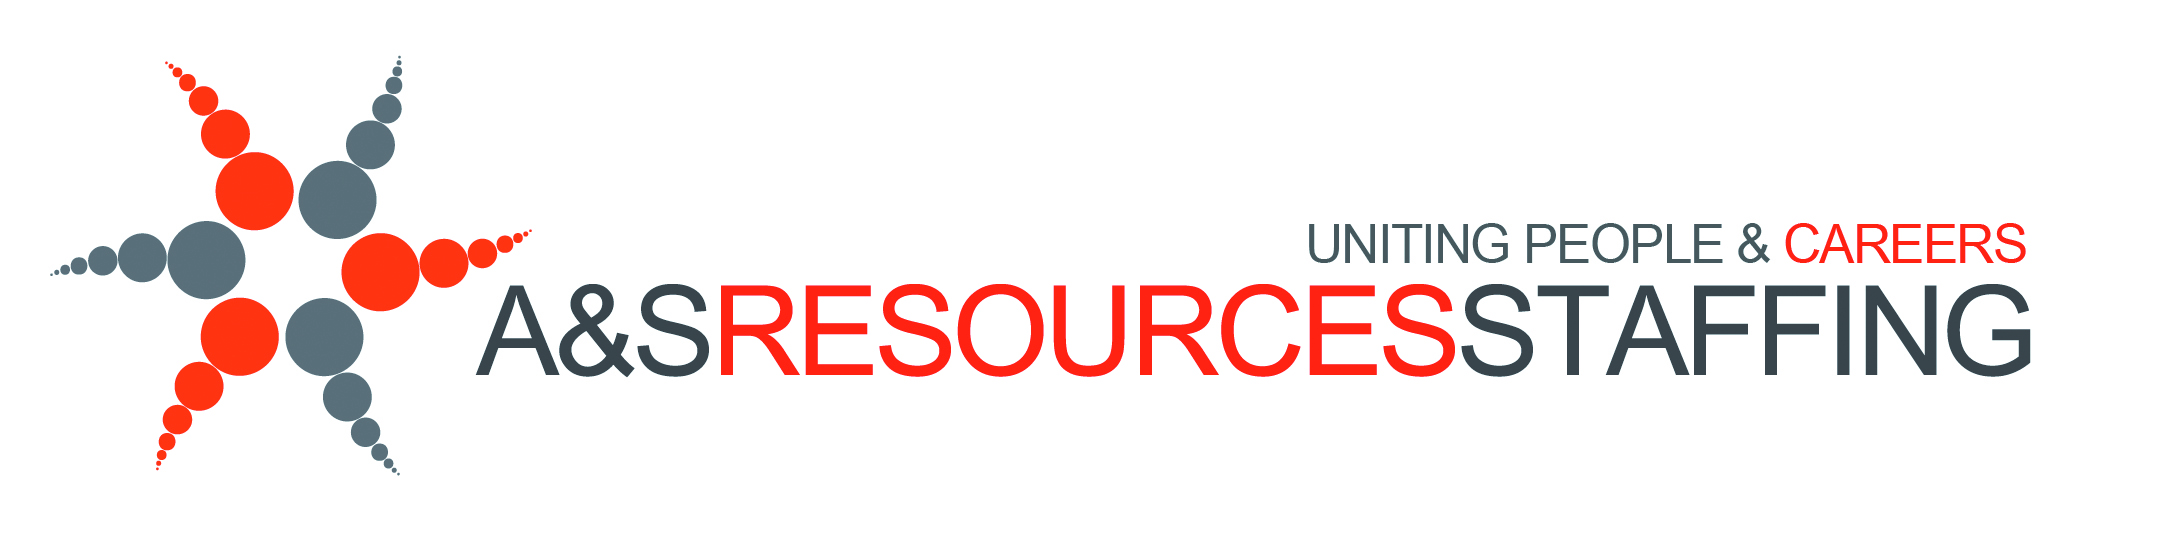 A&S Resources Staffing